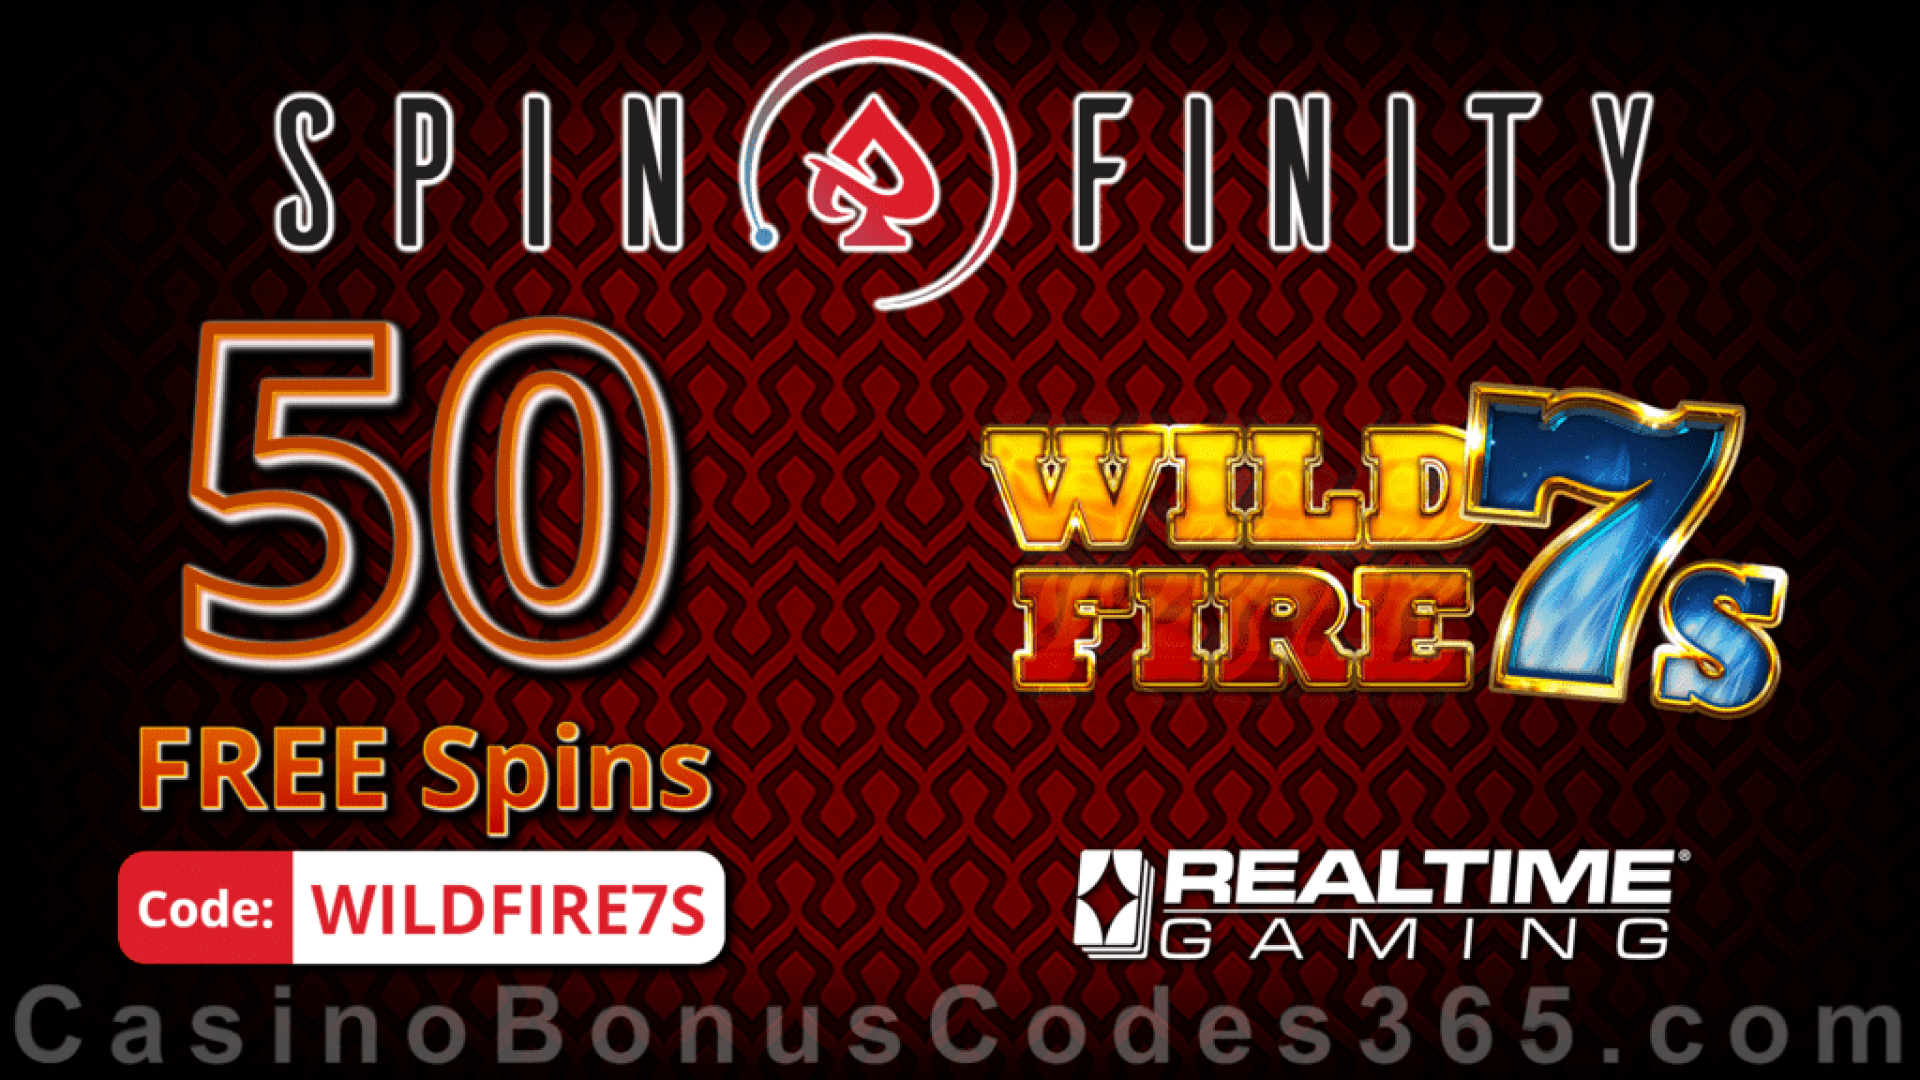 Spinfinity 50 FREE Spins on Wild Fire 7s Special New RTG Game No Deposit Promo